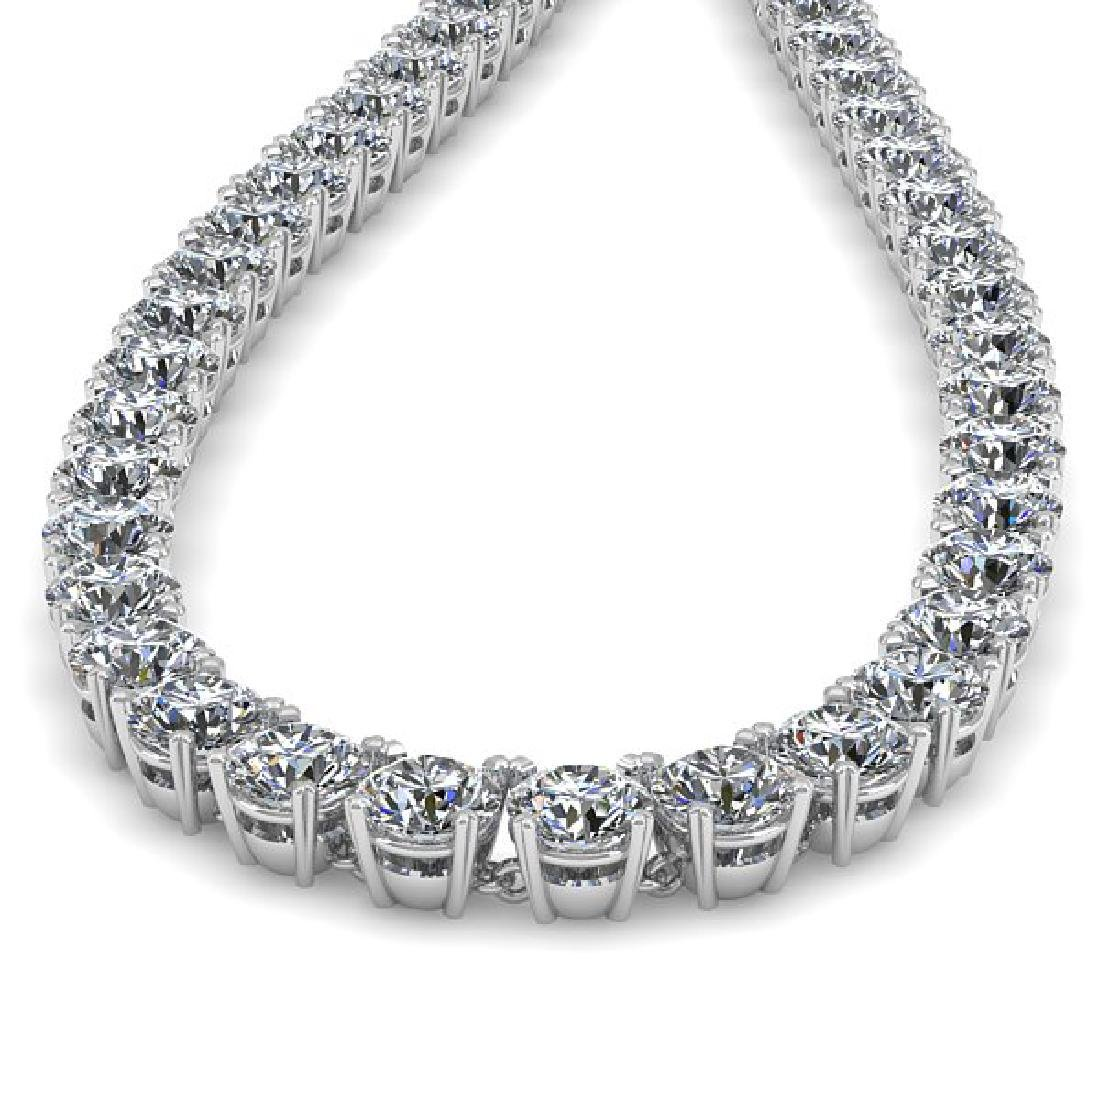 34 CTW Certified SI Diamond Necklace 14K White Gold - 2